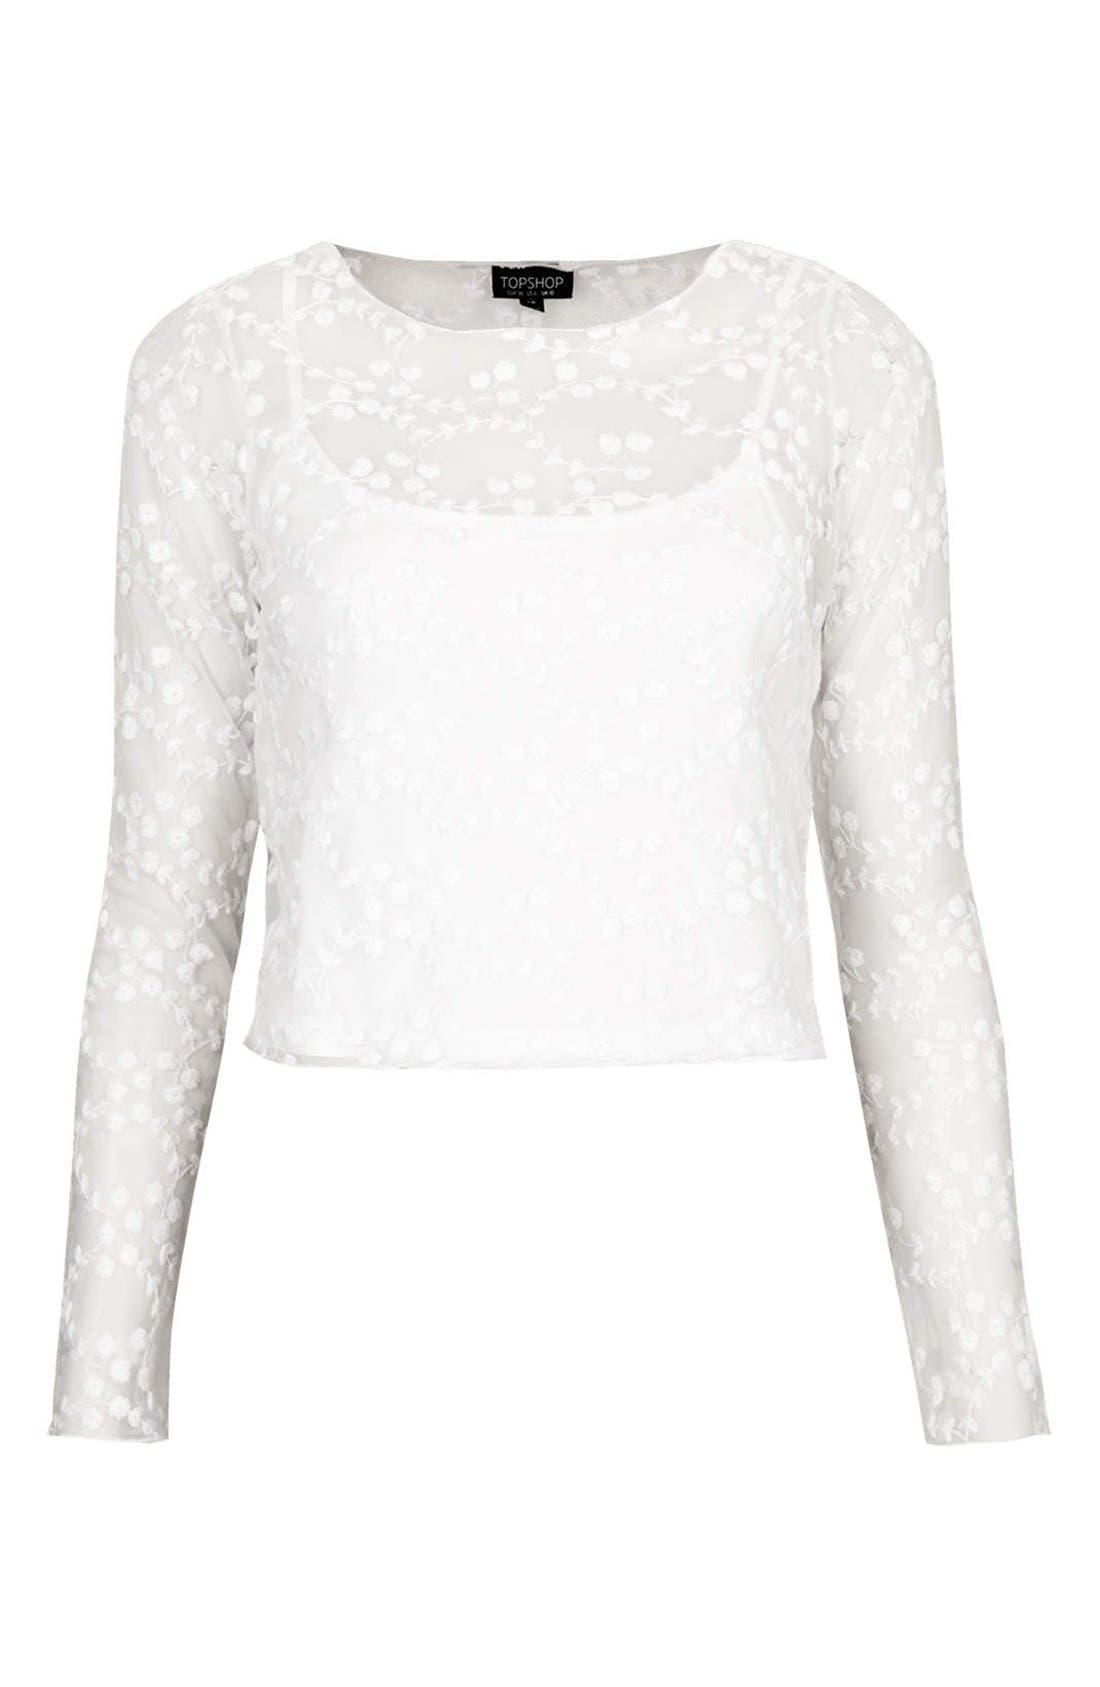 Alternate Image 3  - Topshop Embroidered Floral Mesh Top